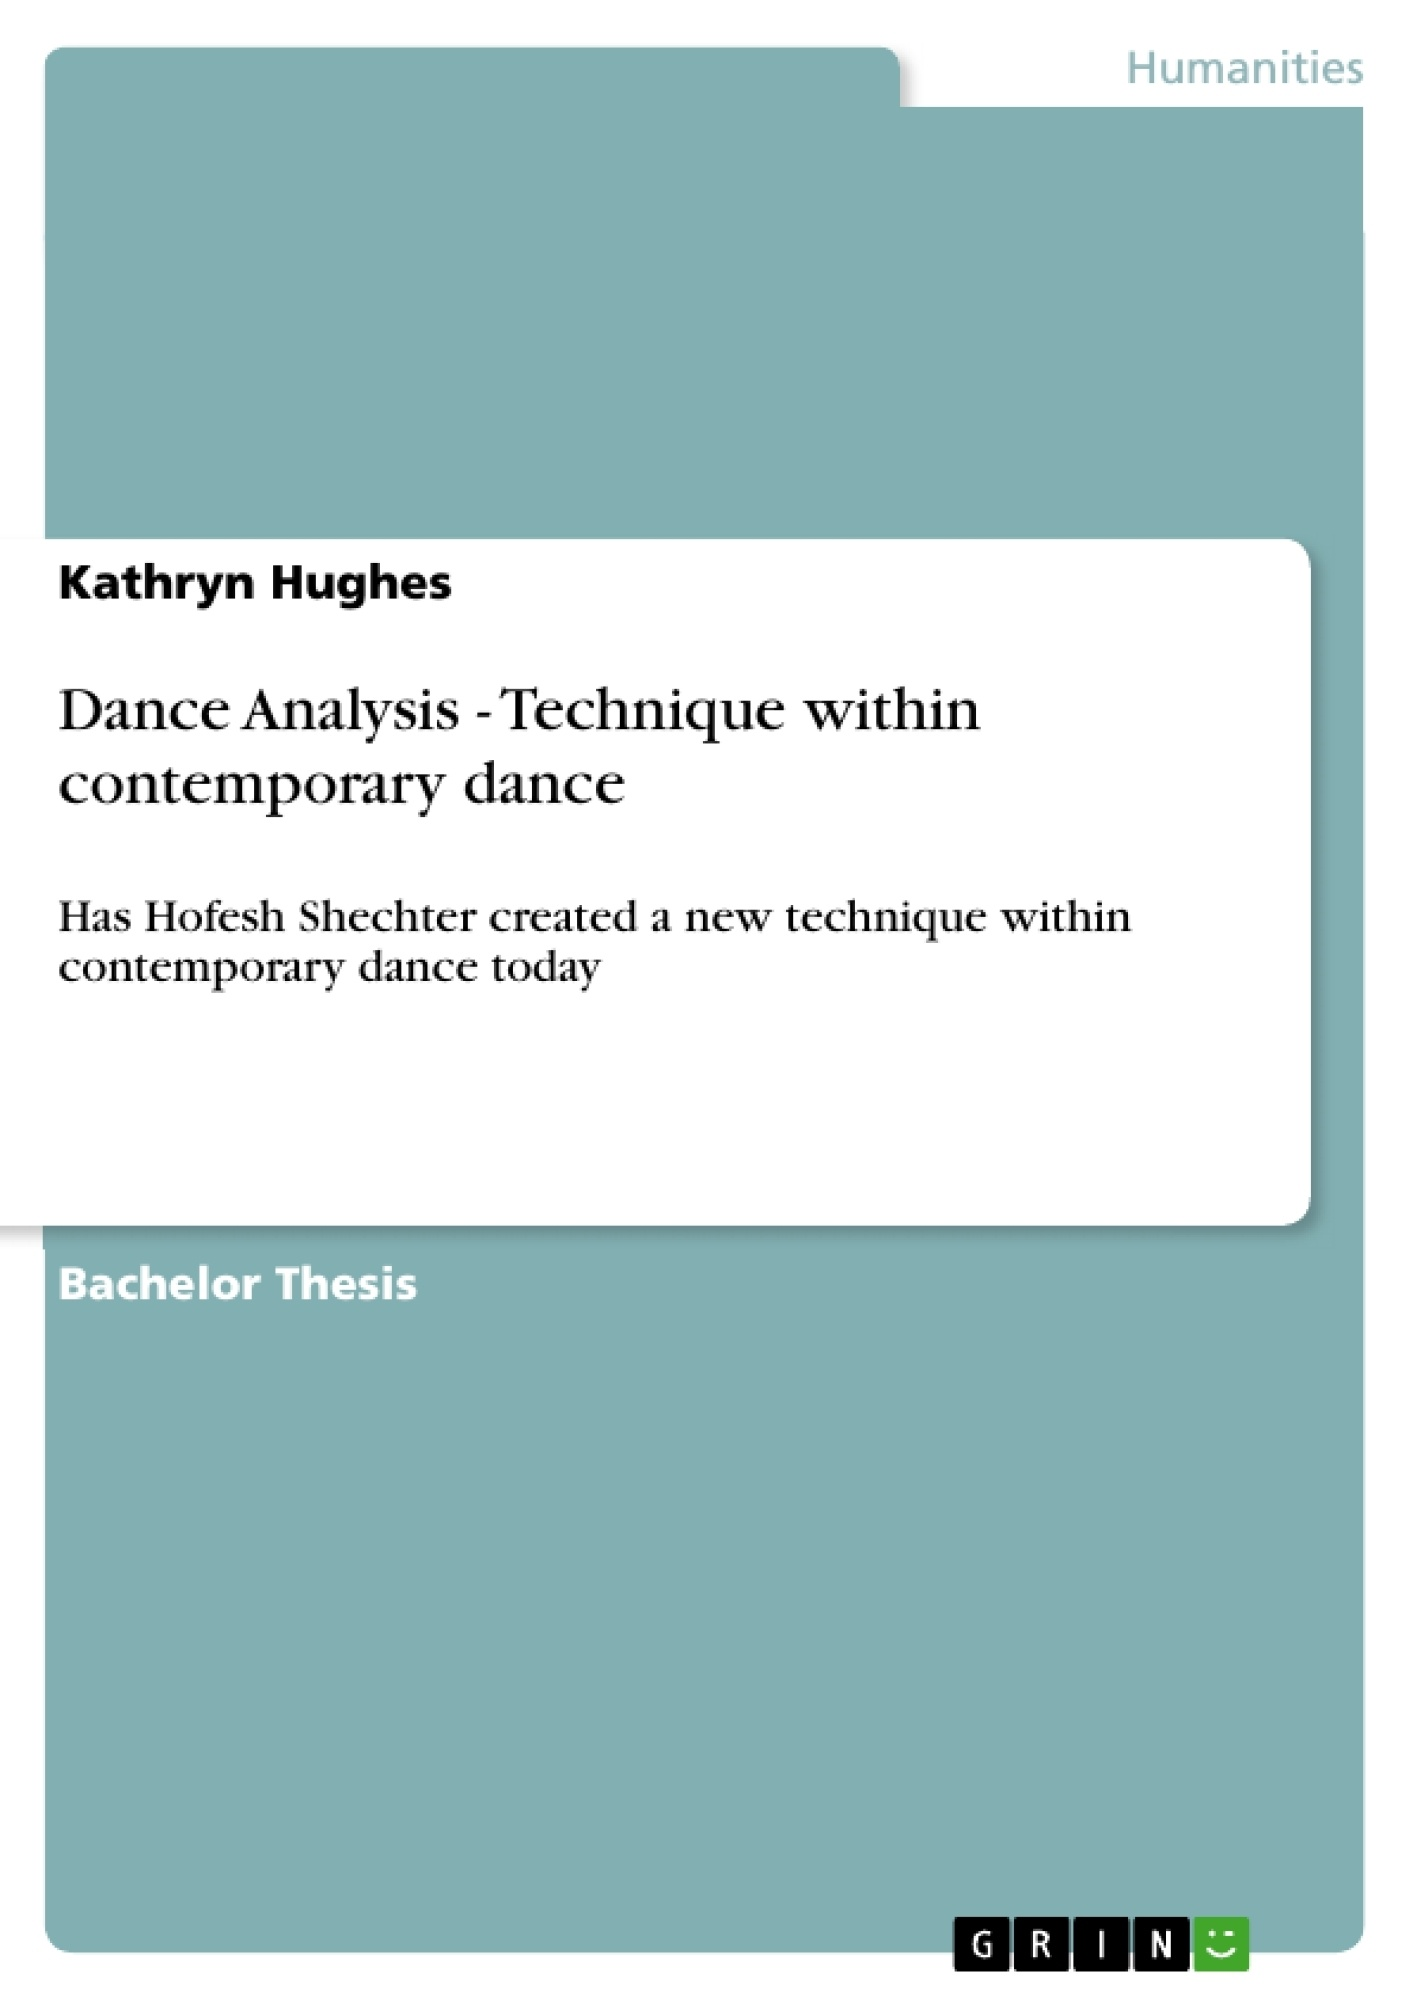 Title: Dance Analysis - Technique within contemporary dance